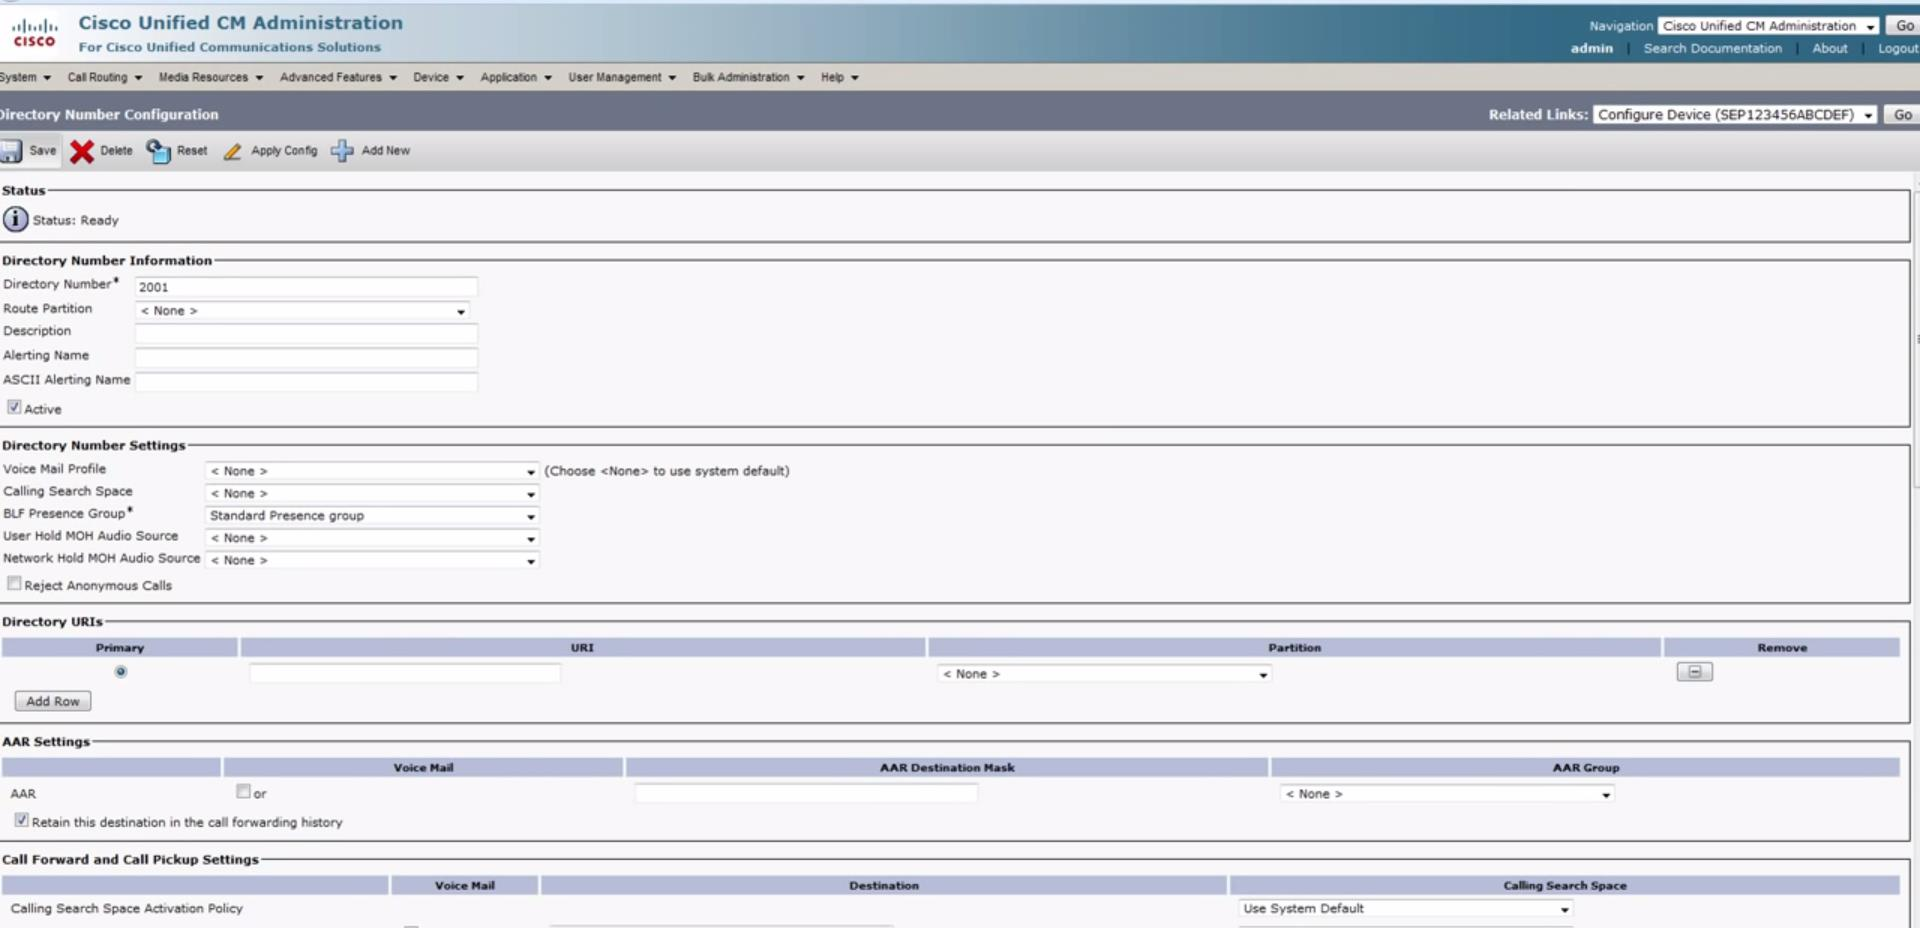 Cisco Unified Communications Manager Integration (CUCM